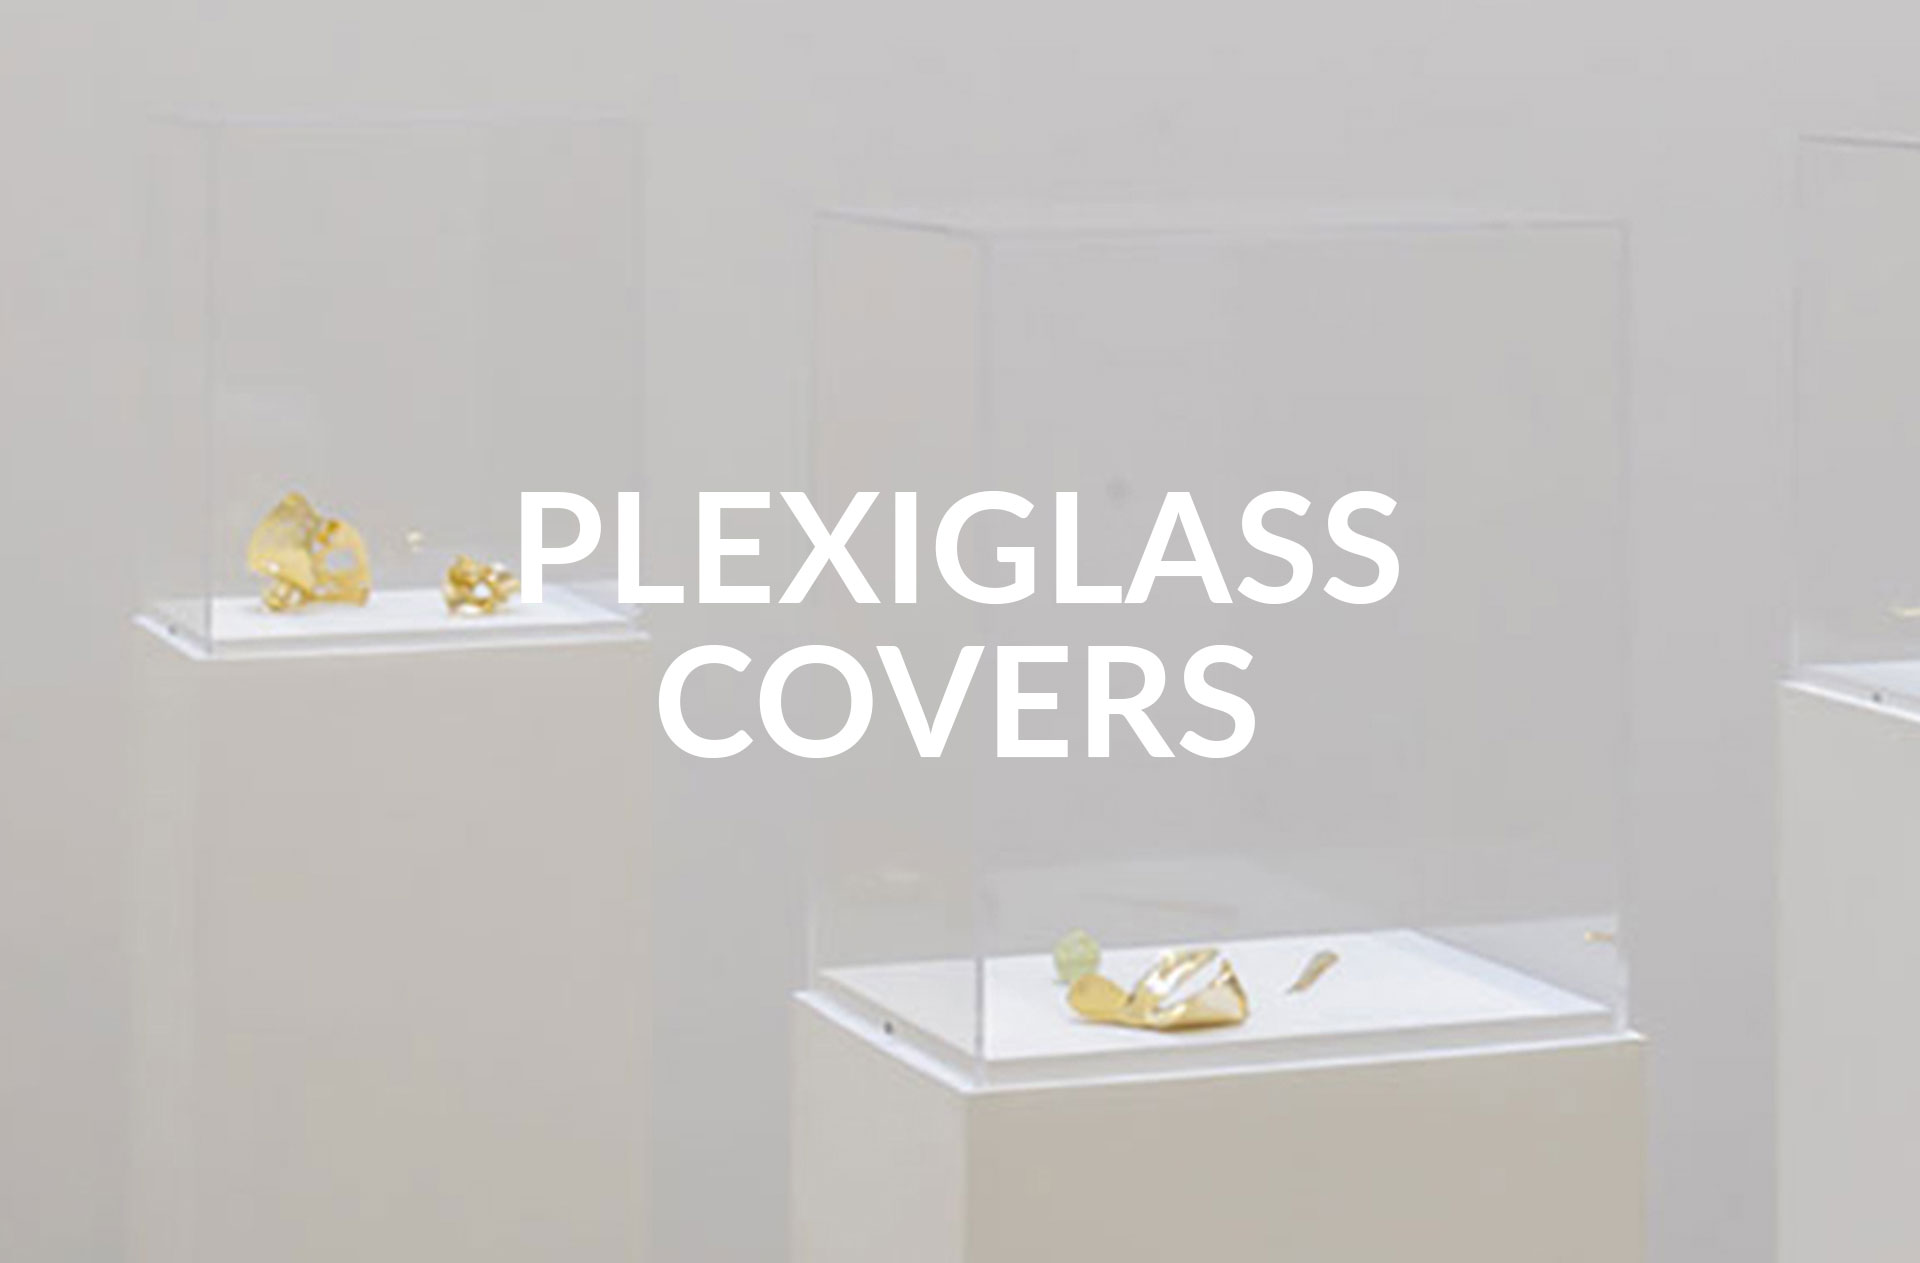 Plexiglass covers